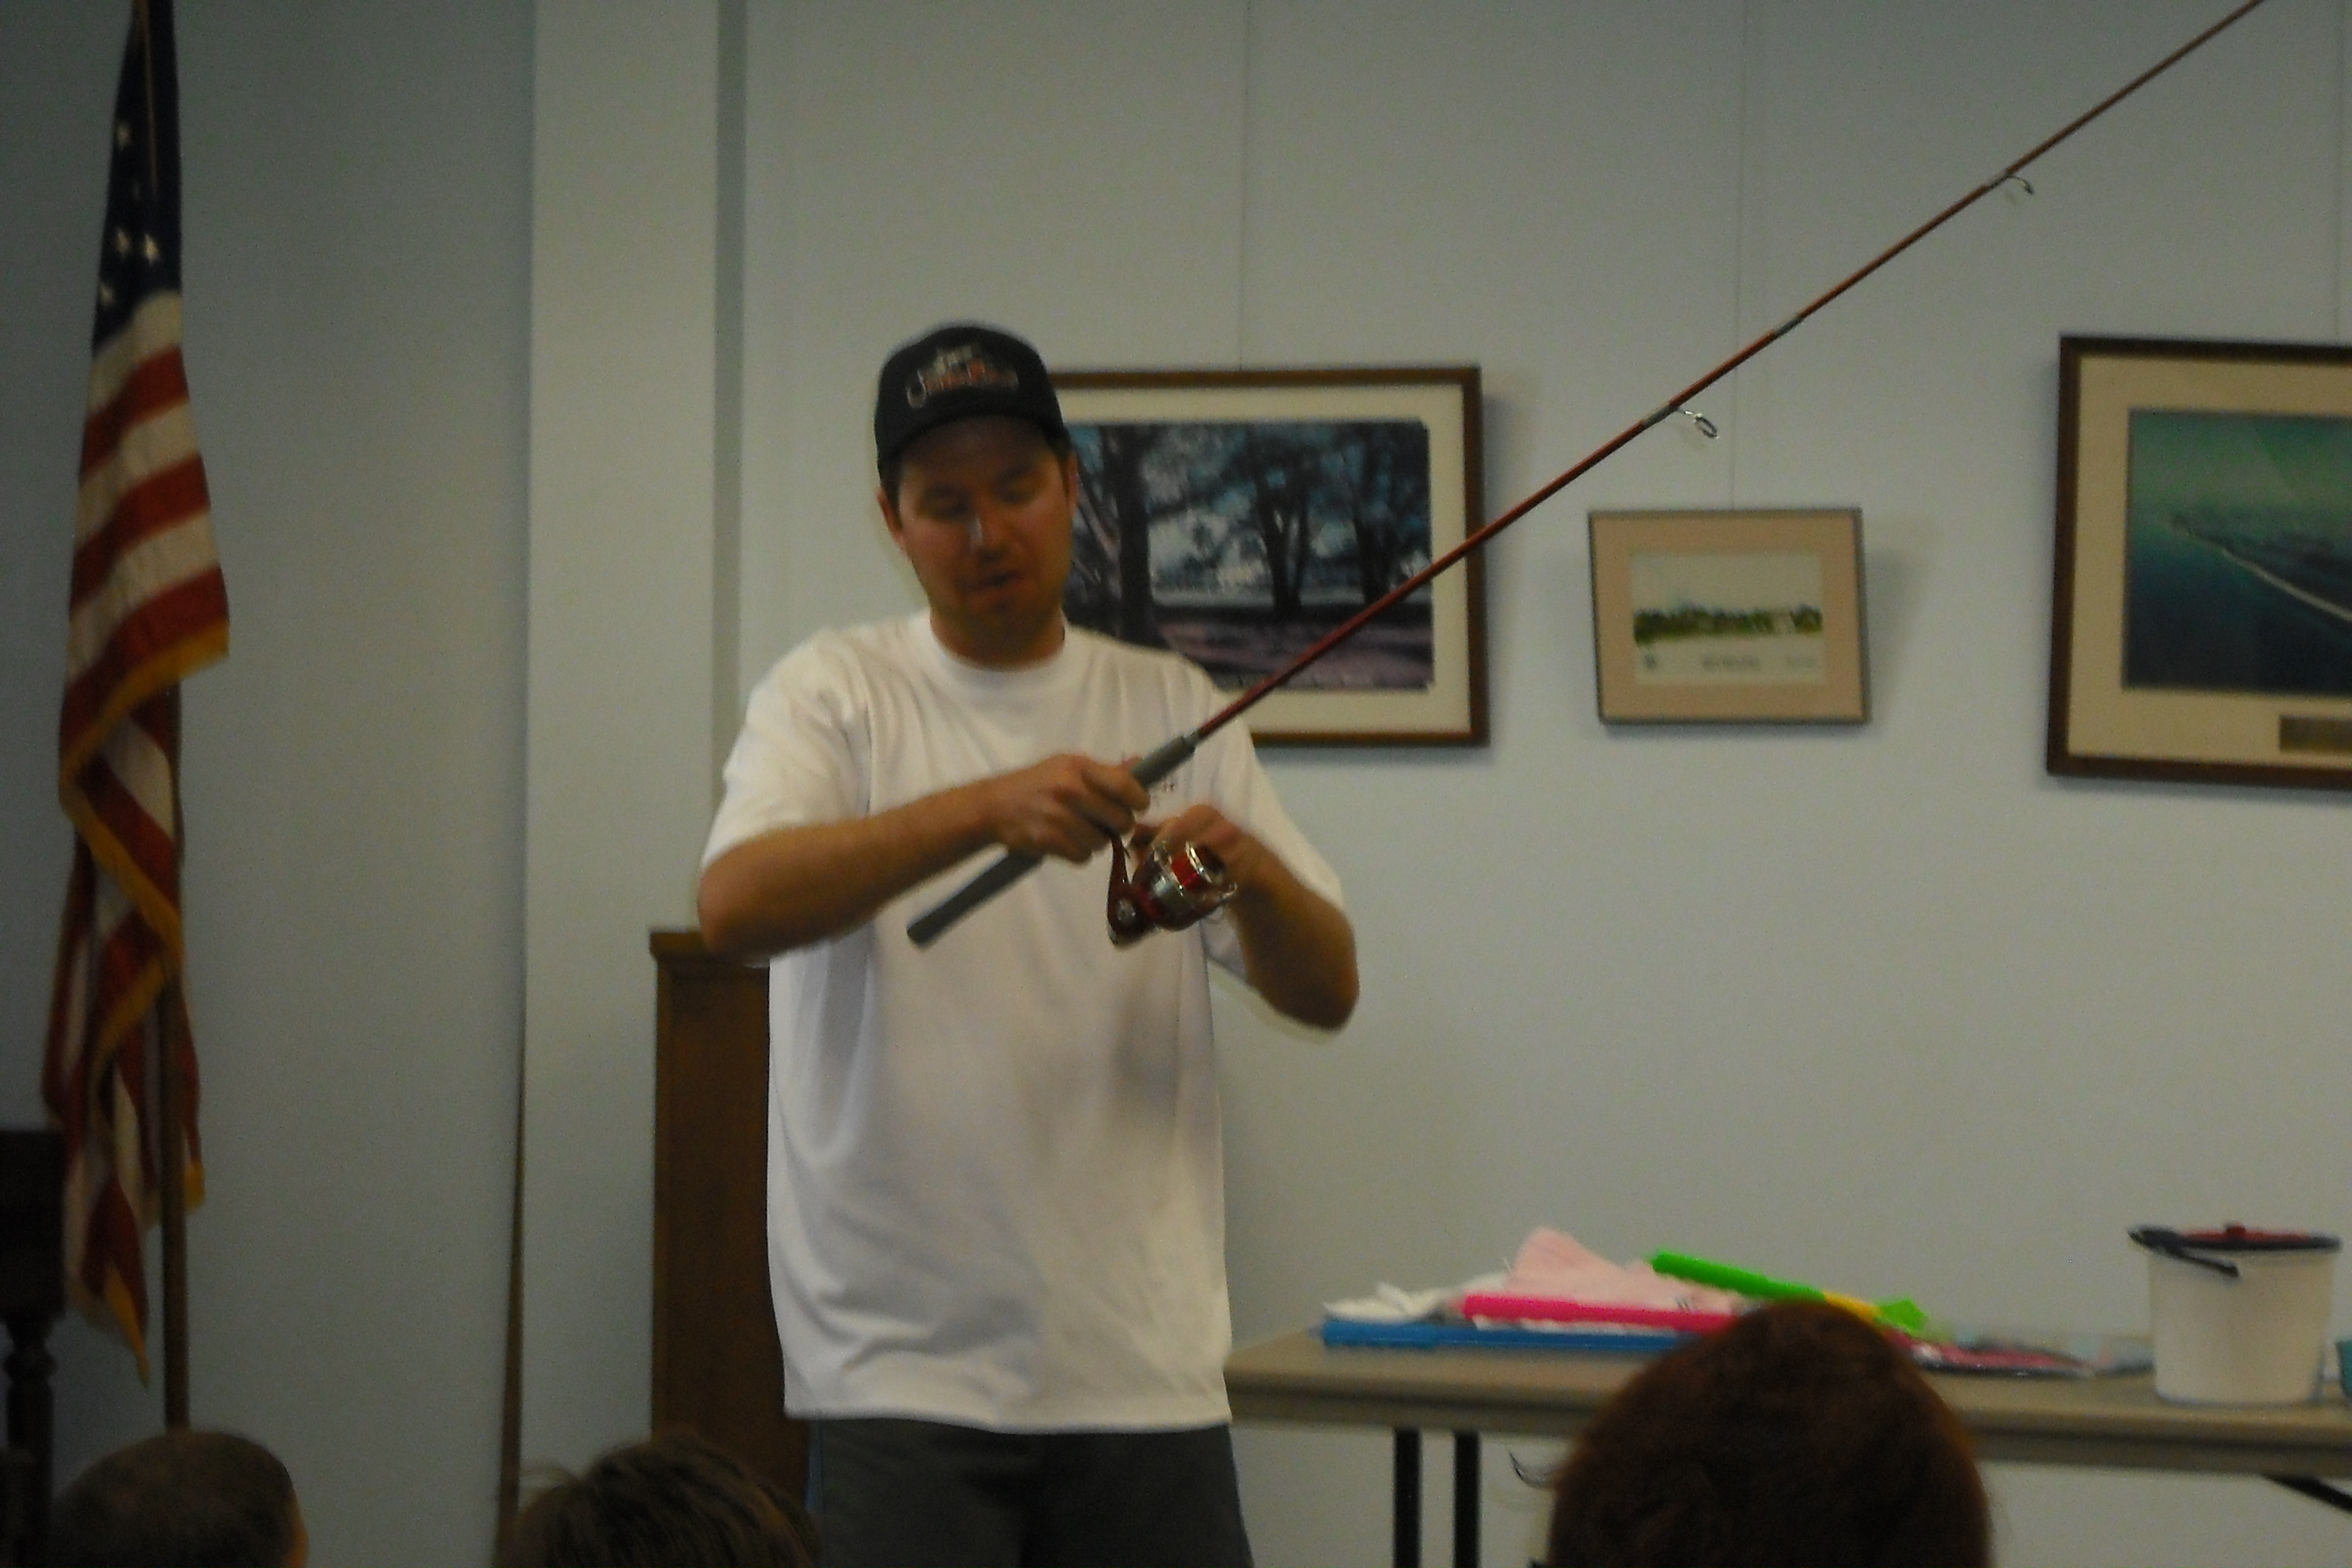 The speaker shows a fishing pole to the audience